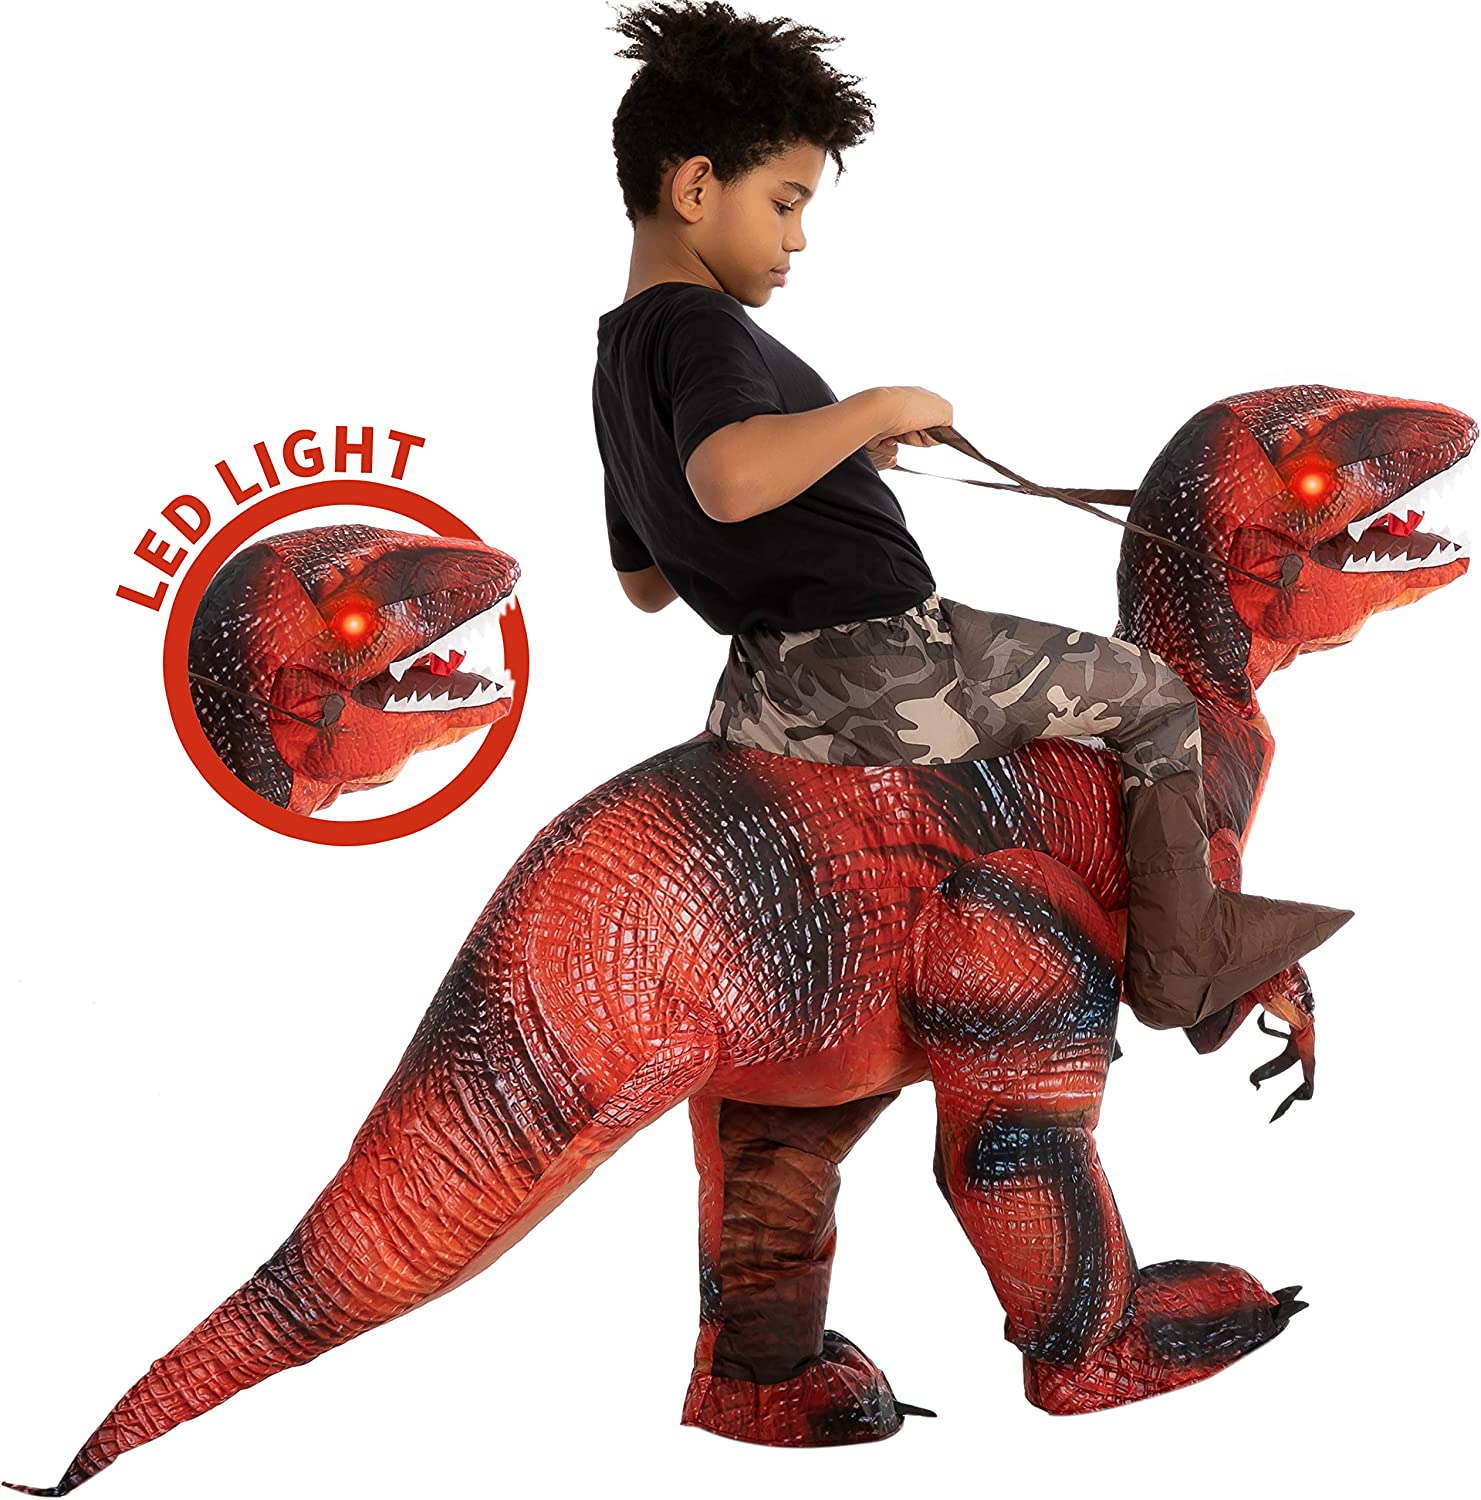 Child Unisex Spooktacular Creations Inflatable Halloween Costume Ride A Raptor Inflatable Costume with LED Light Eyes